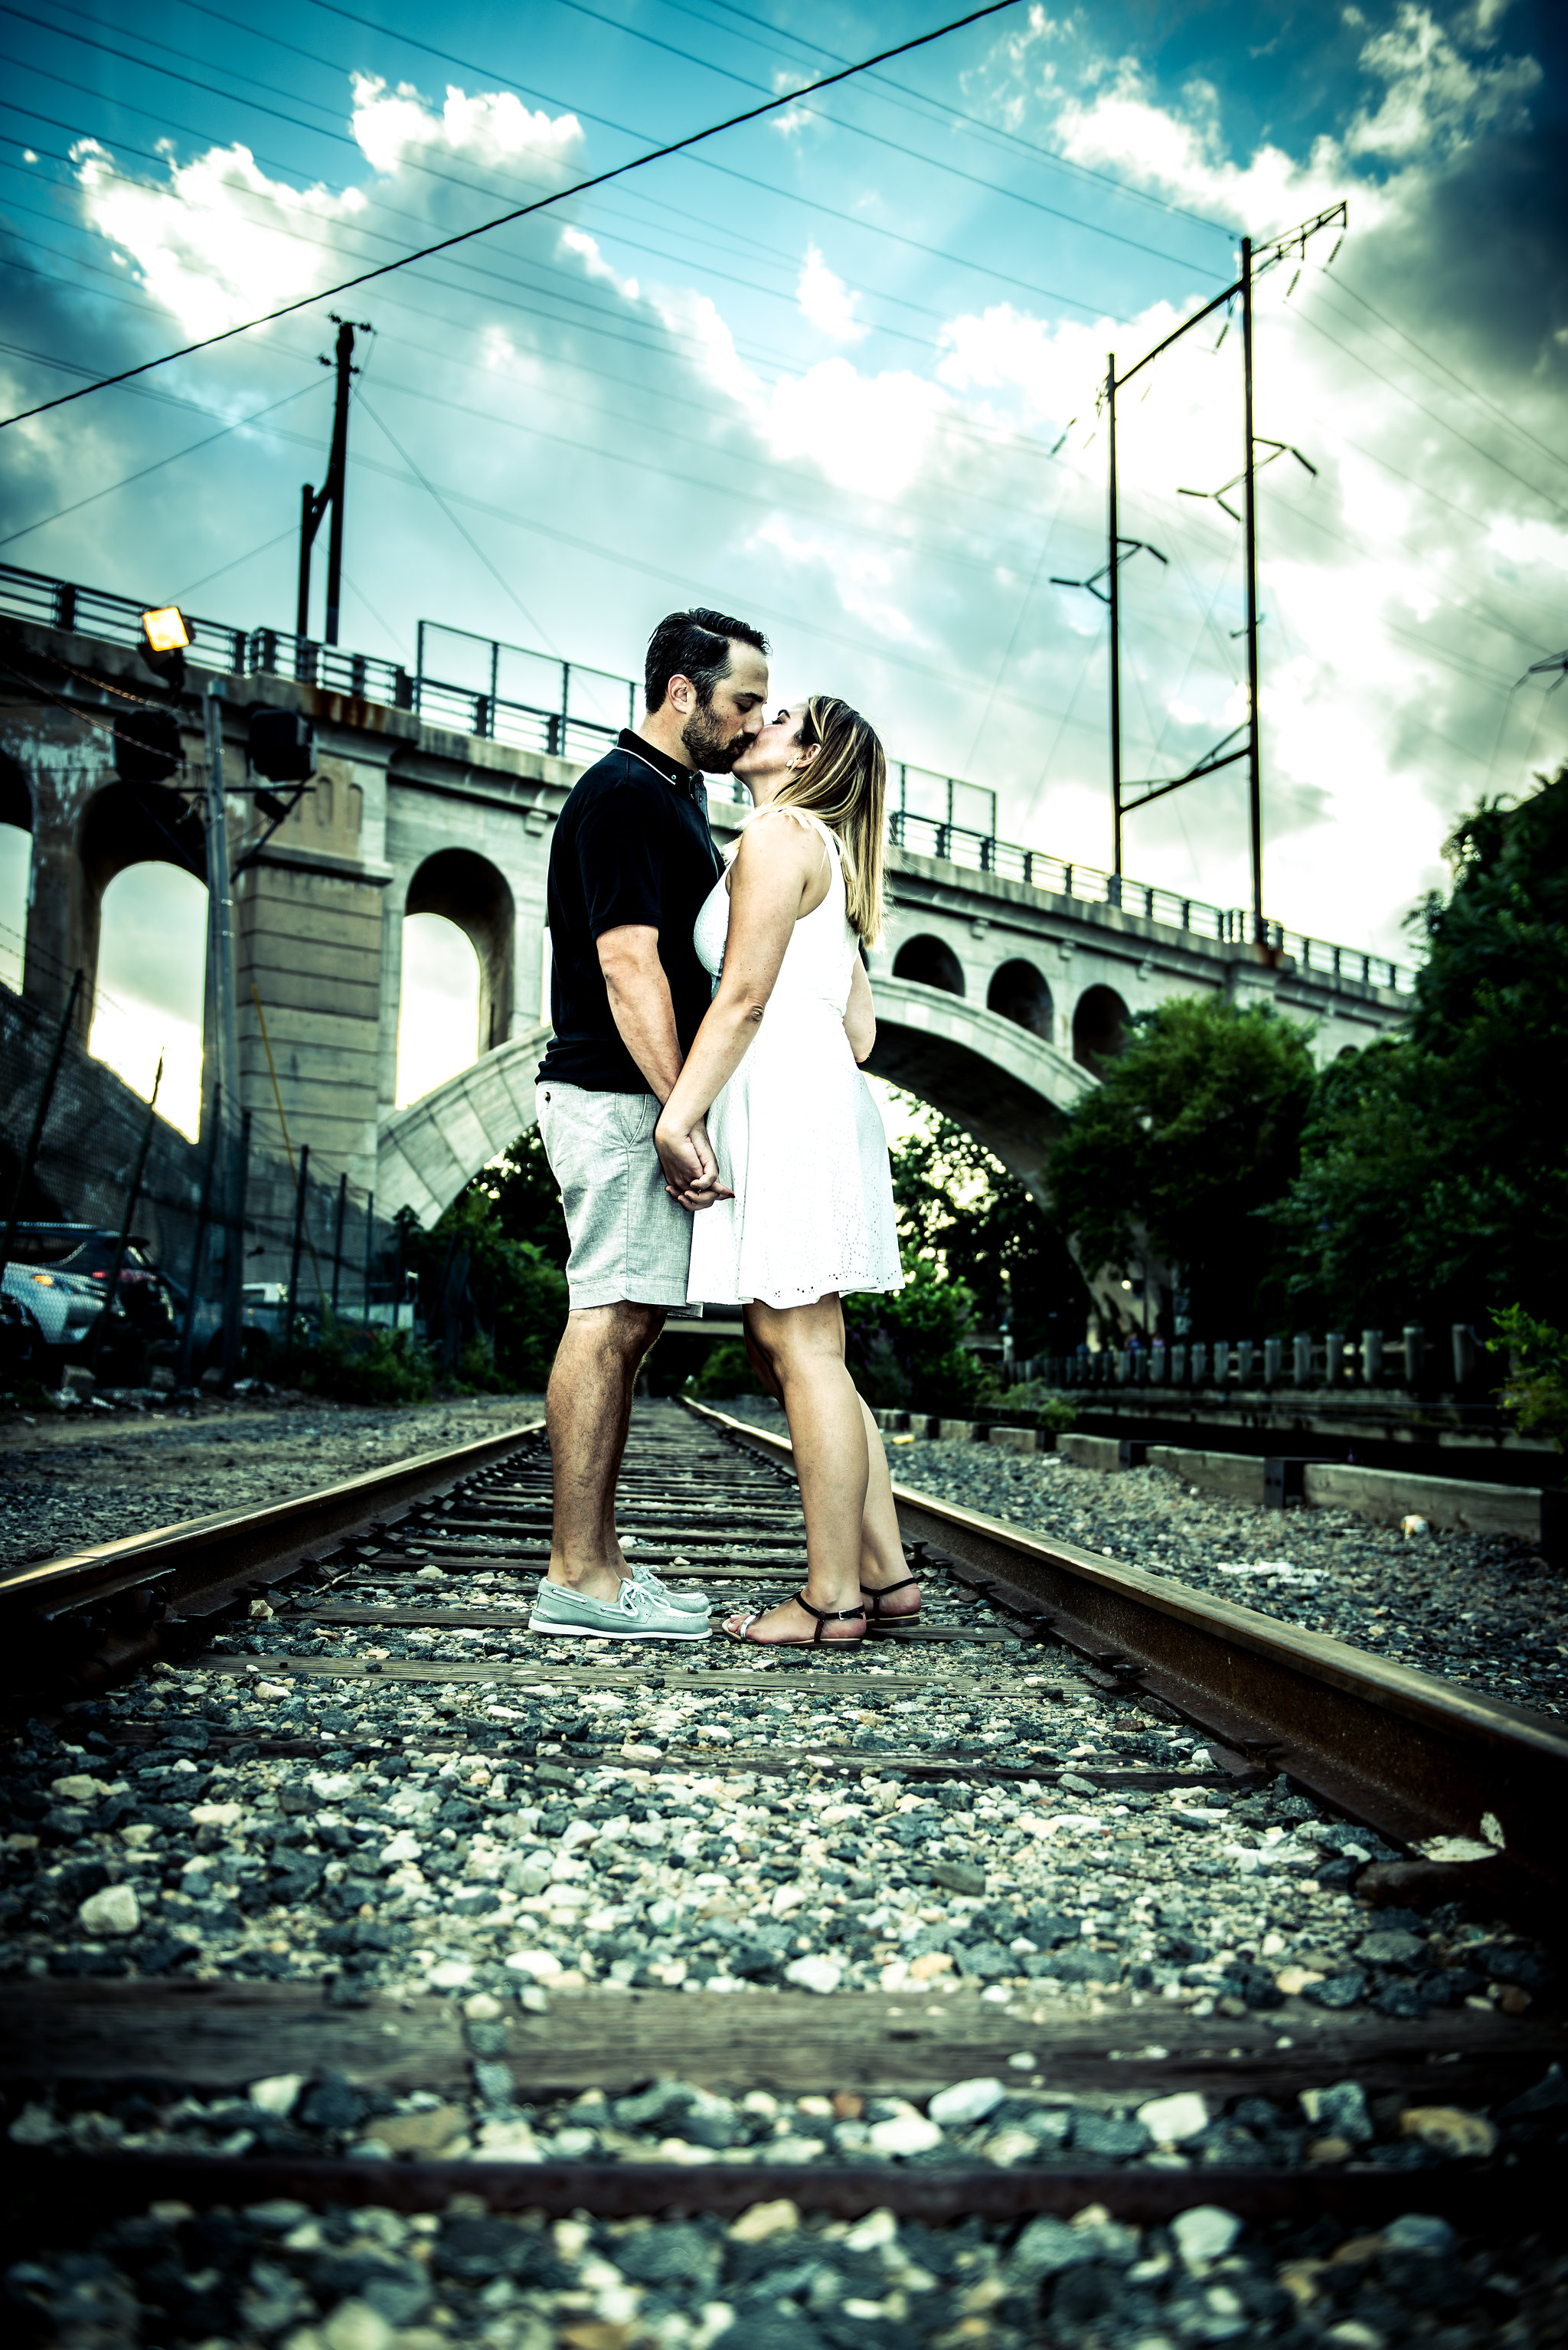 manayunk-towpath-engagement